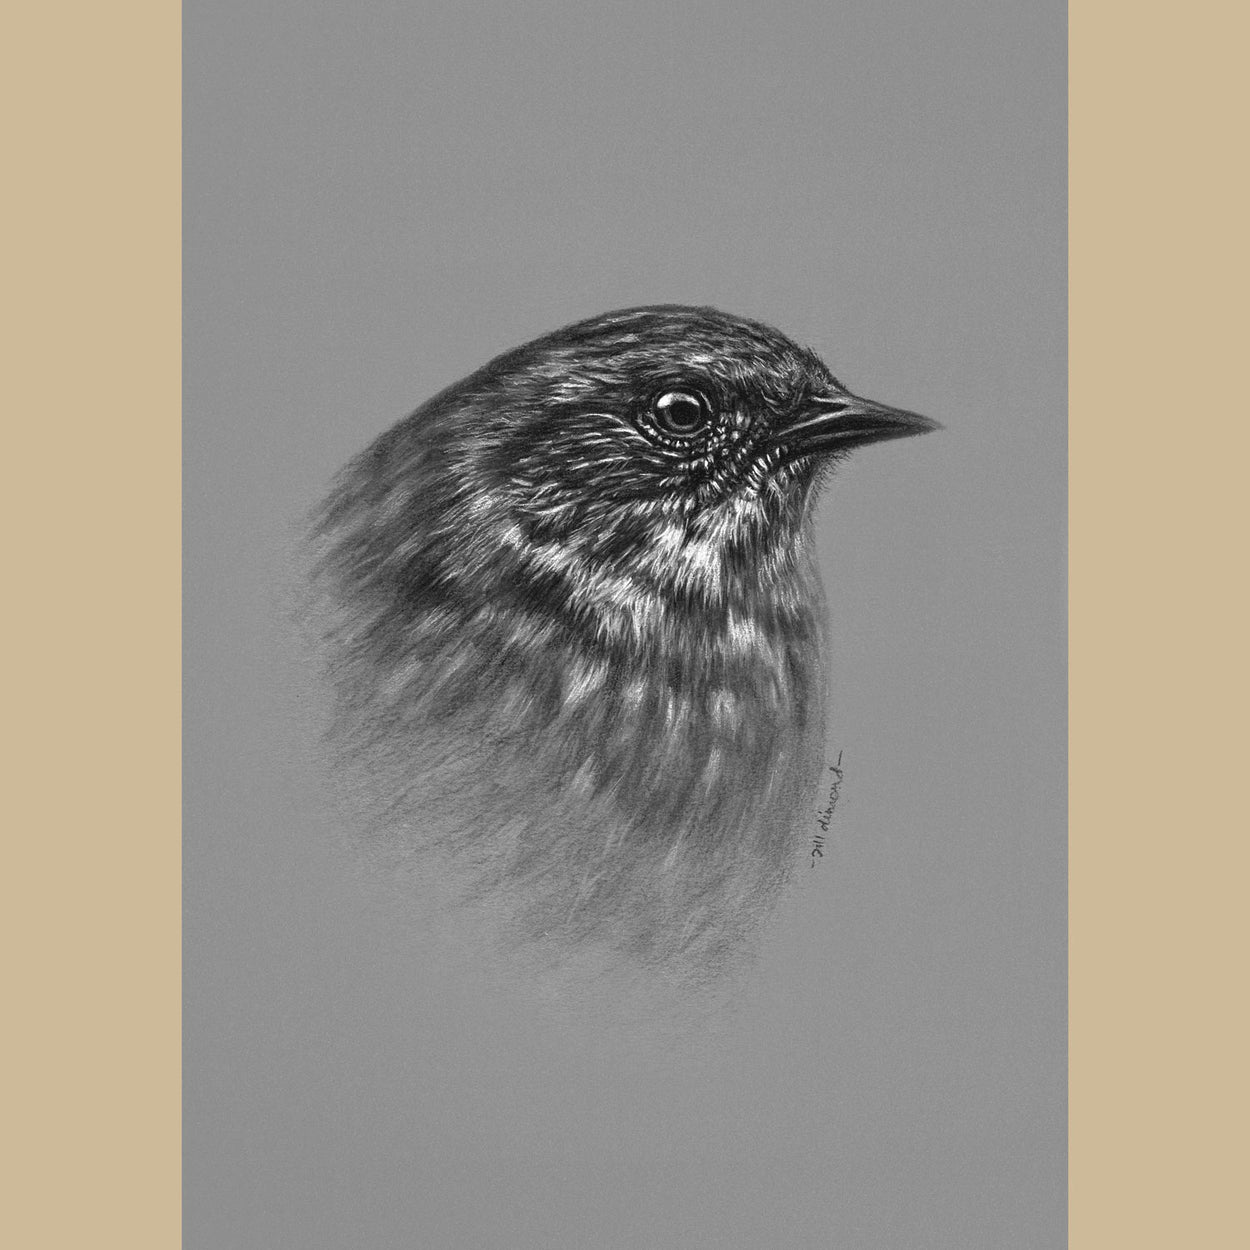 Dunnock Hedge Sparrow Charcoal Drawing - The Thriving Wild - Jill Dimond